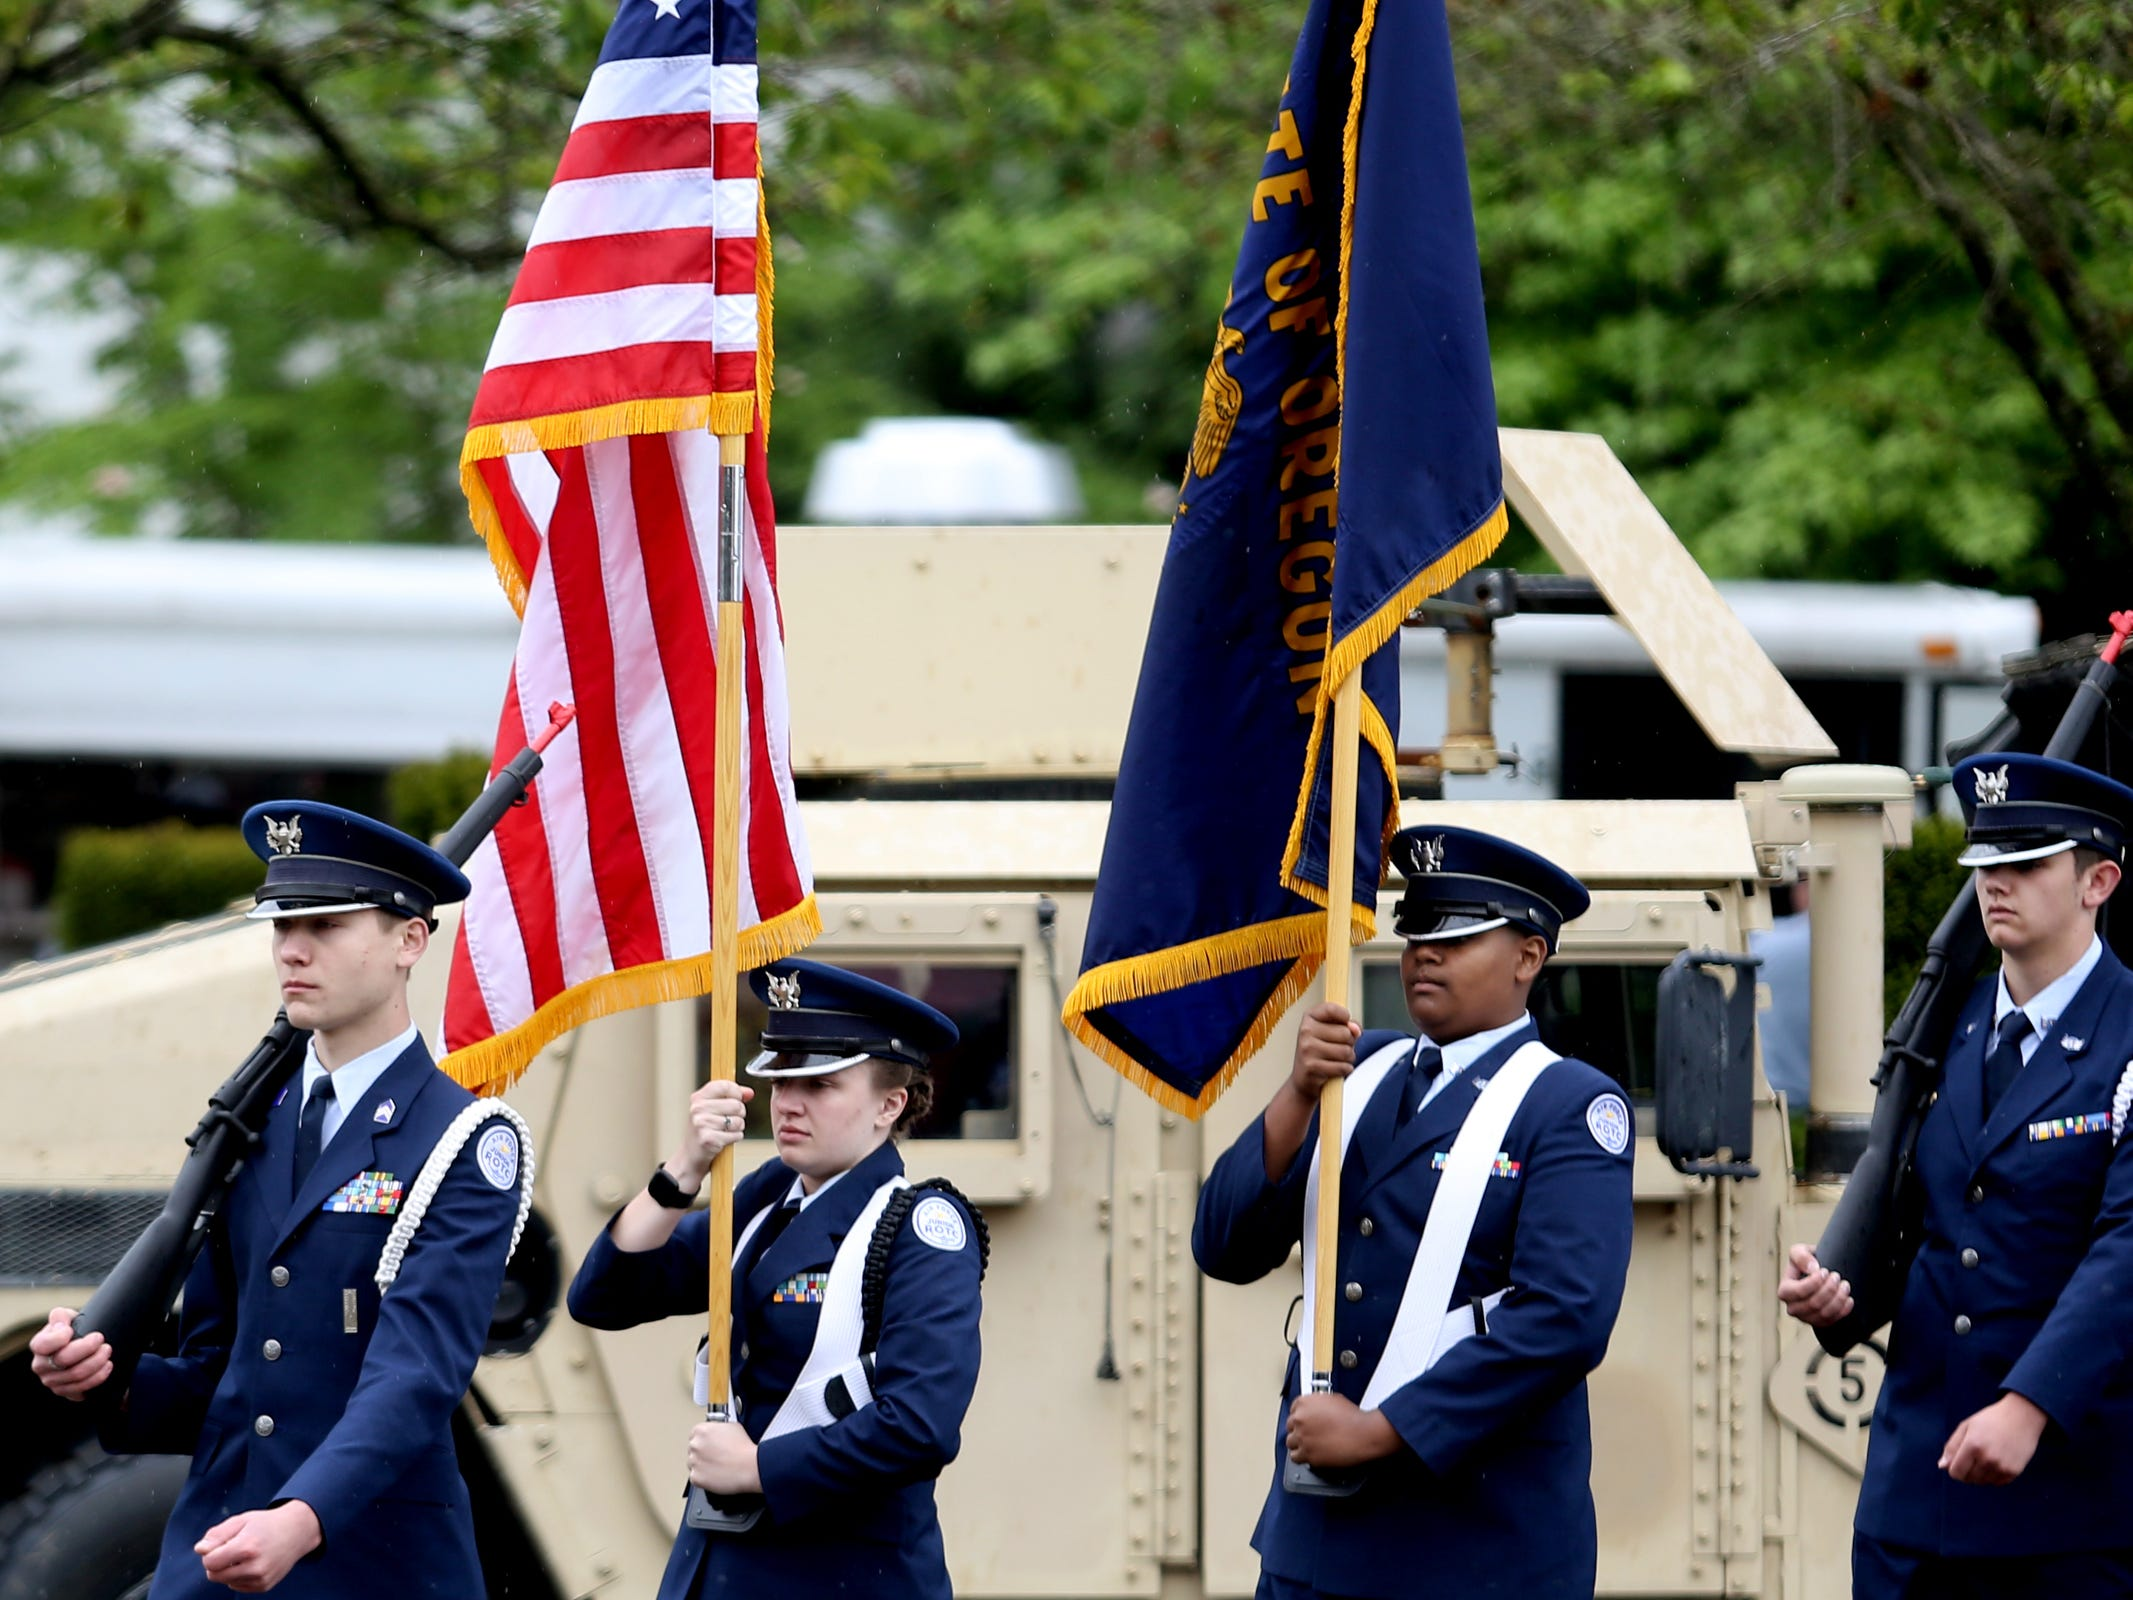 A JROTC color guard arrives for an Armed Forces Day celebration at the Oregon State Capitol in Salem on May 14, 2019.